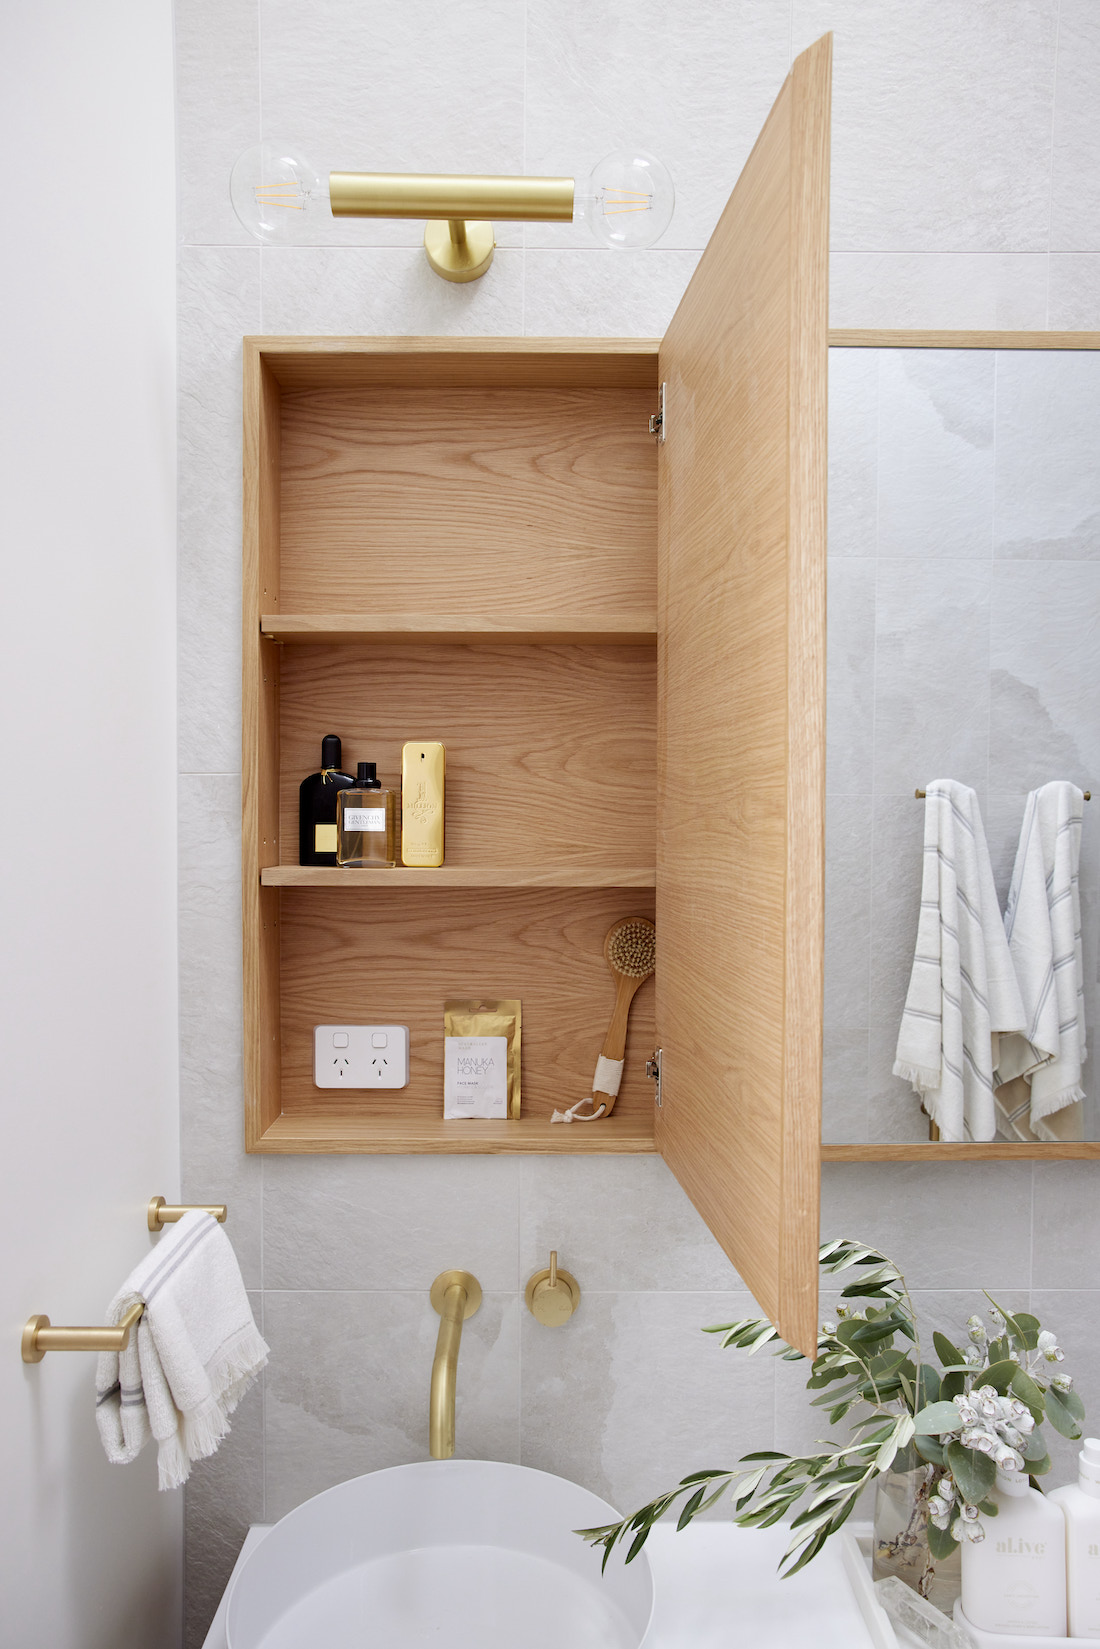 Timber shaving cabinet with storage